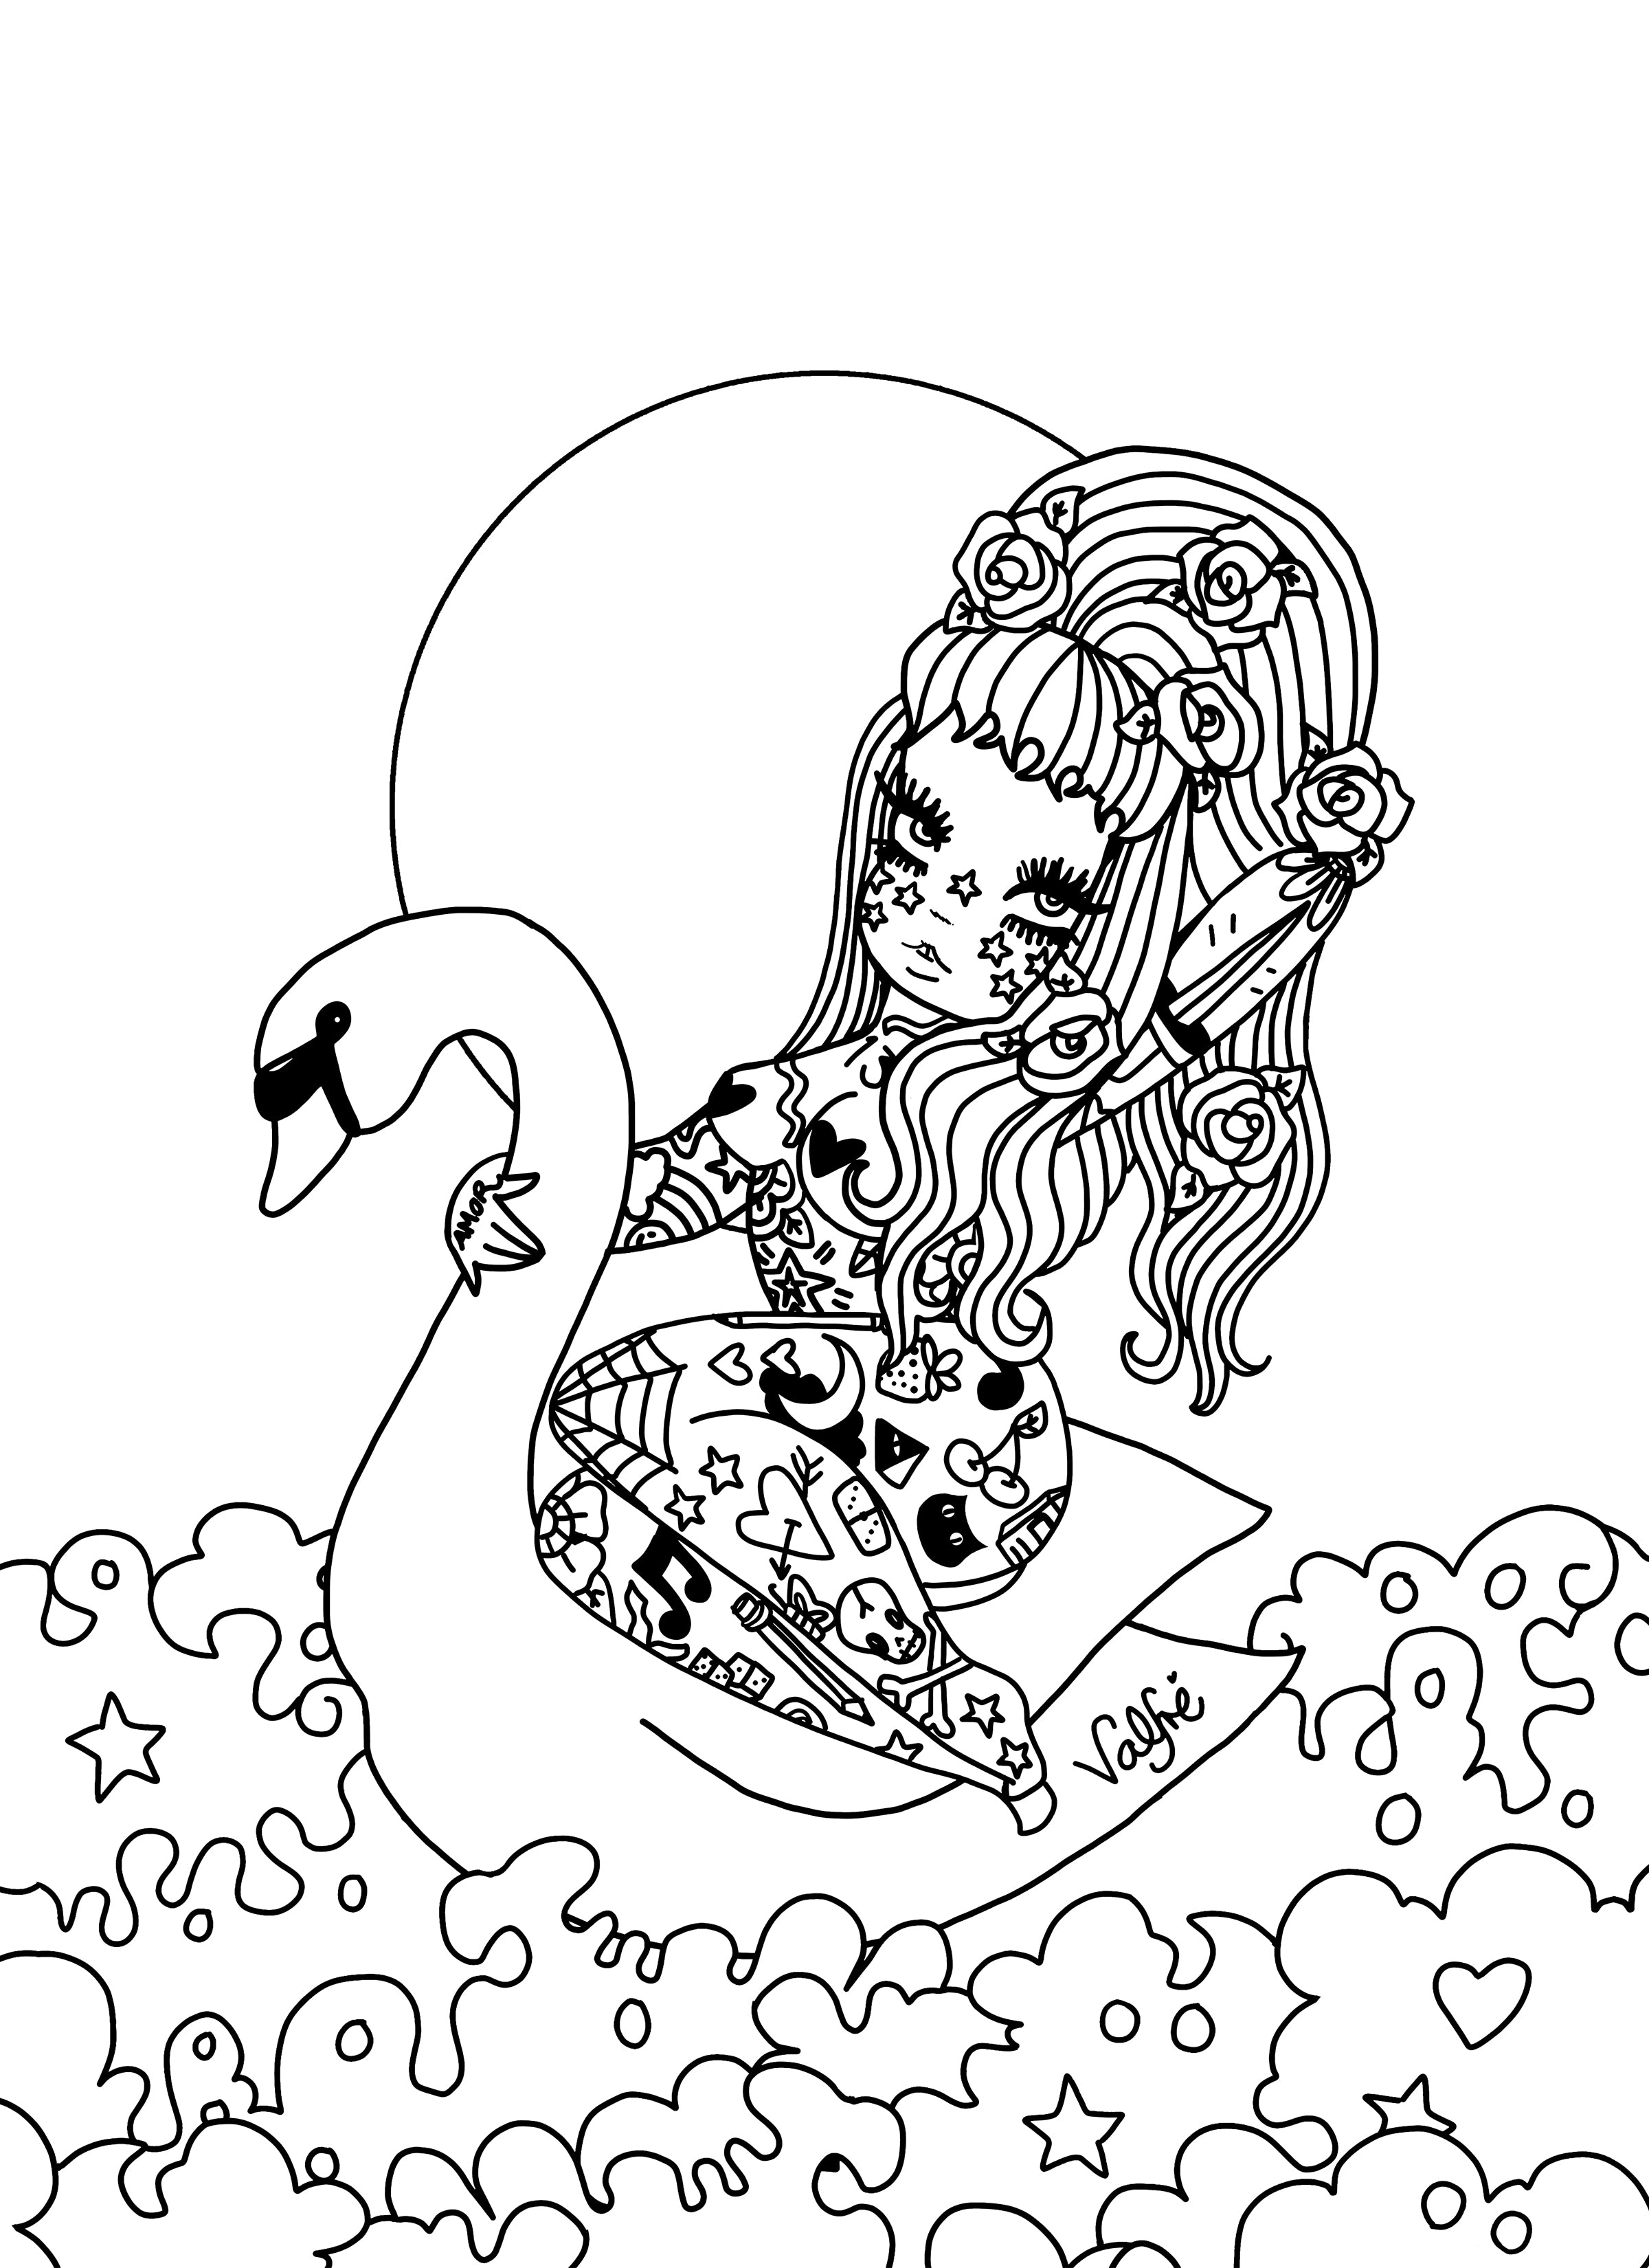 Mouth Coloring Pages - GetColoringPages.com | 3300x2400